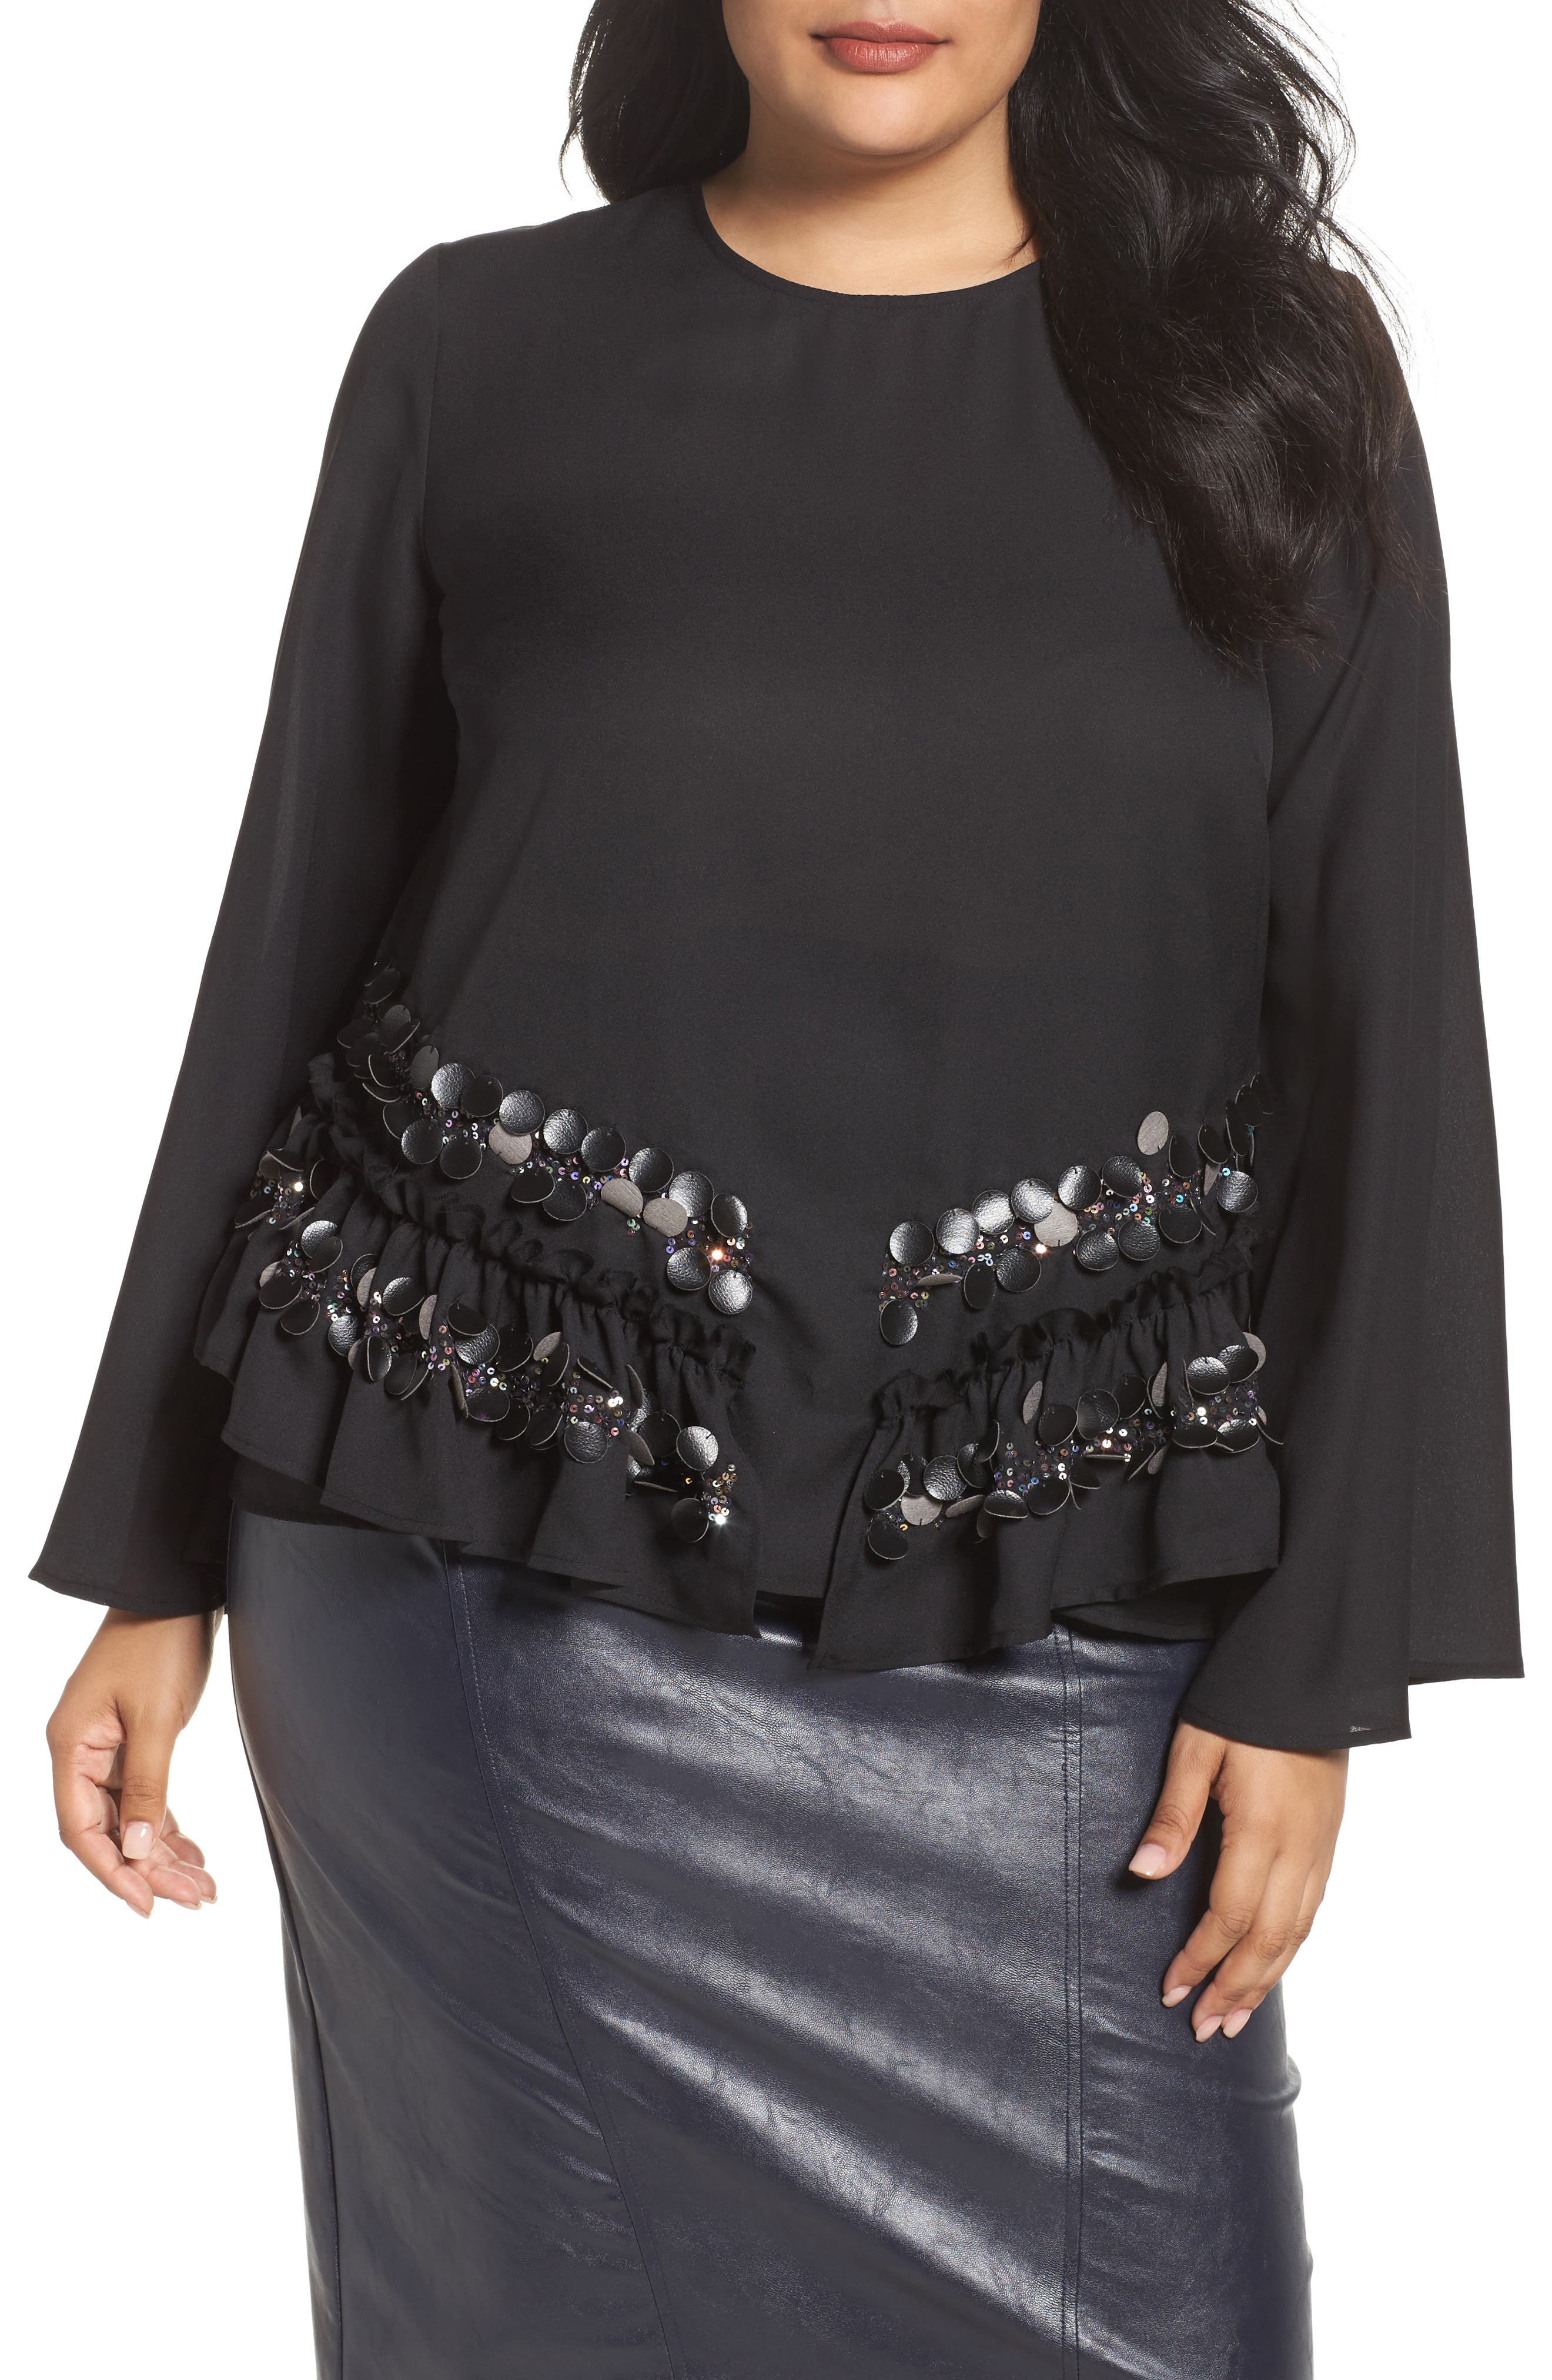 LOST INK Sequin Ruffle Swing Top, Main, color, 001